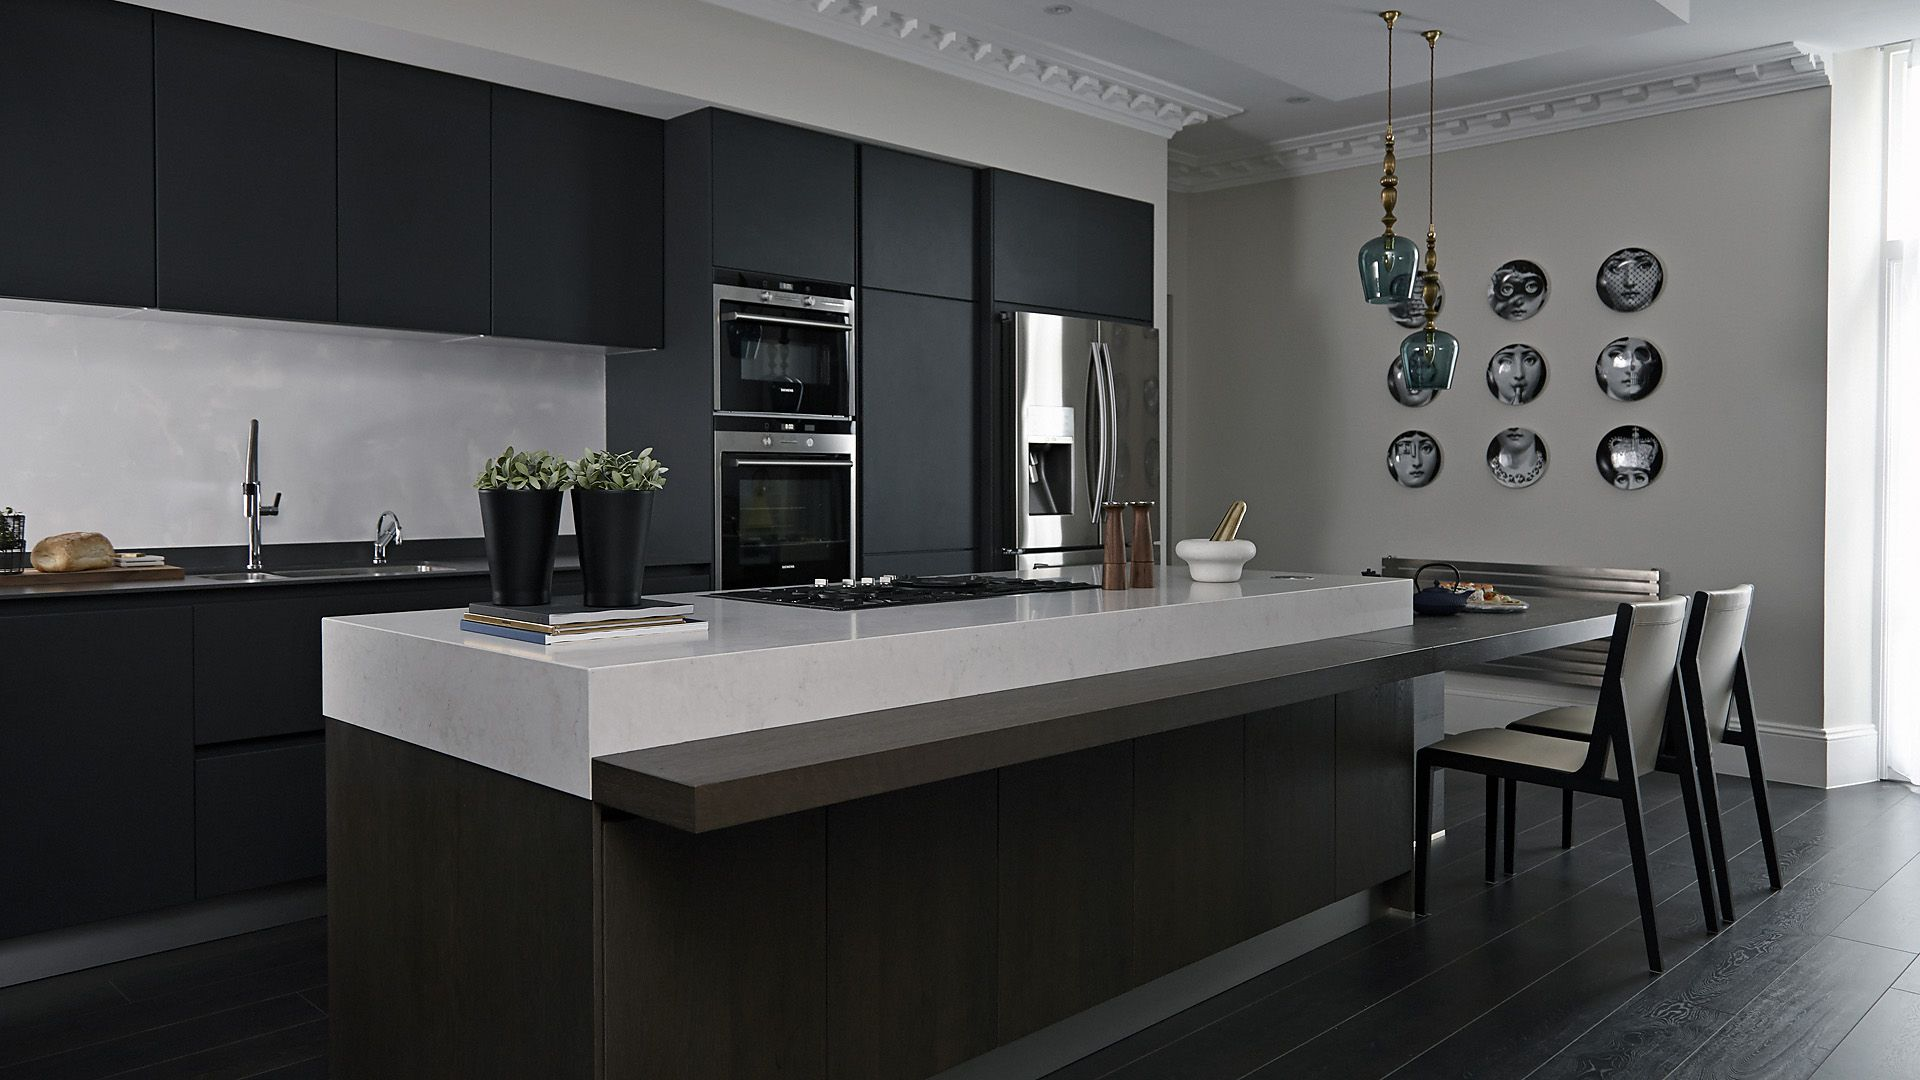 Interior Designed Kitchens Marble Work Surface In Black And Chrome Luxury Kitchen  14